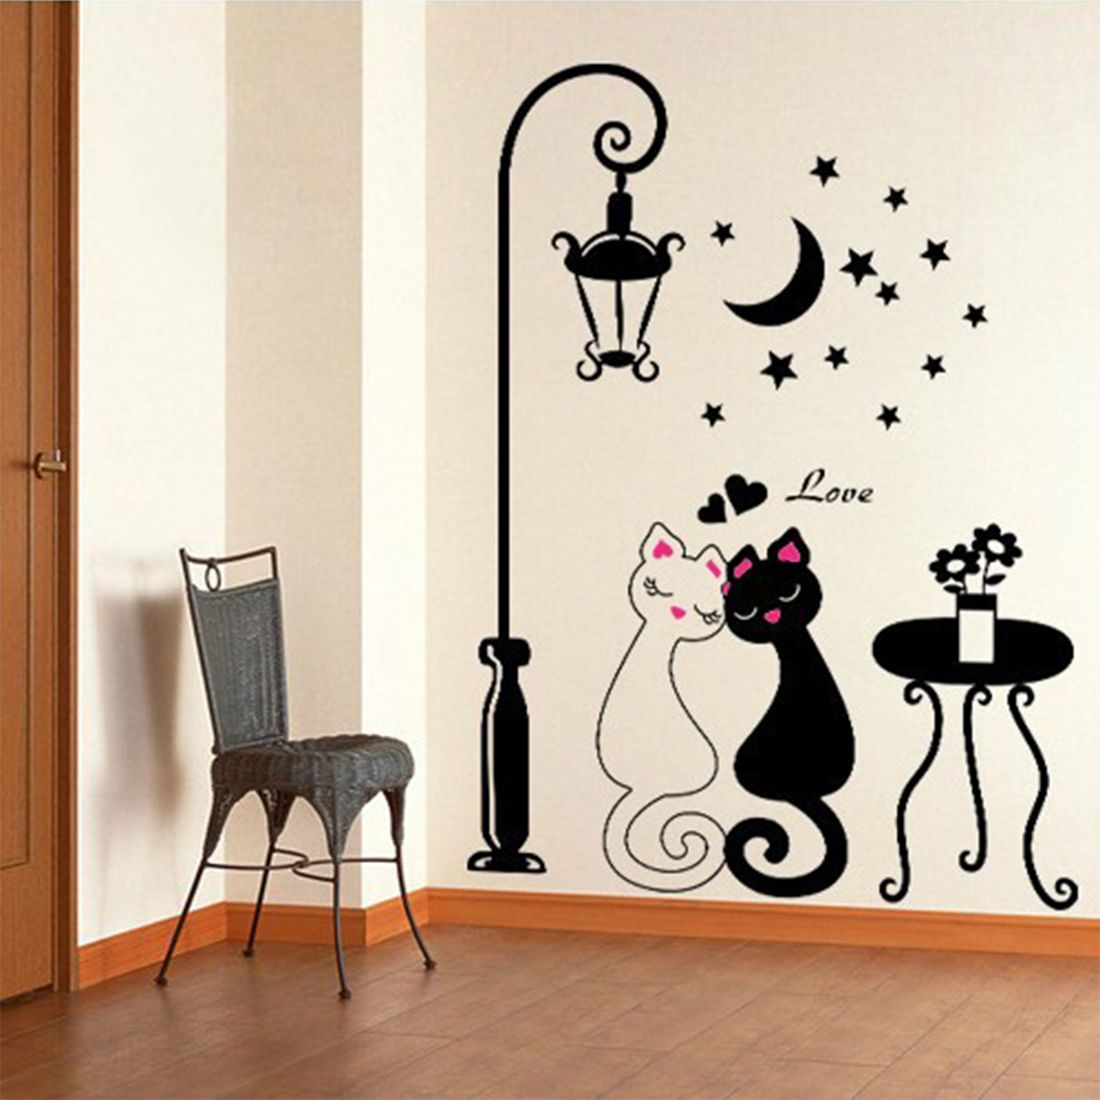 wall sticker designs for living room gallery of wall decals ideas new wall  sticker designs for . wall sticker designs for living room ...